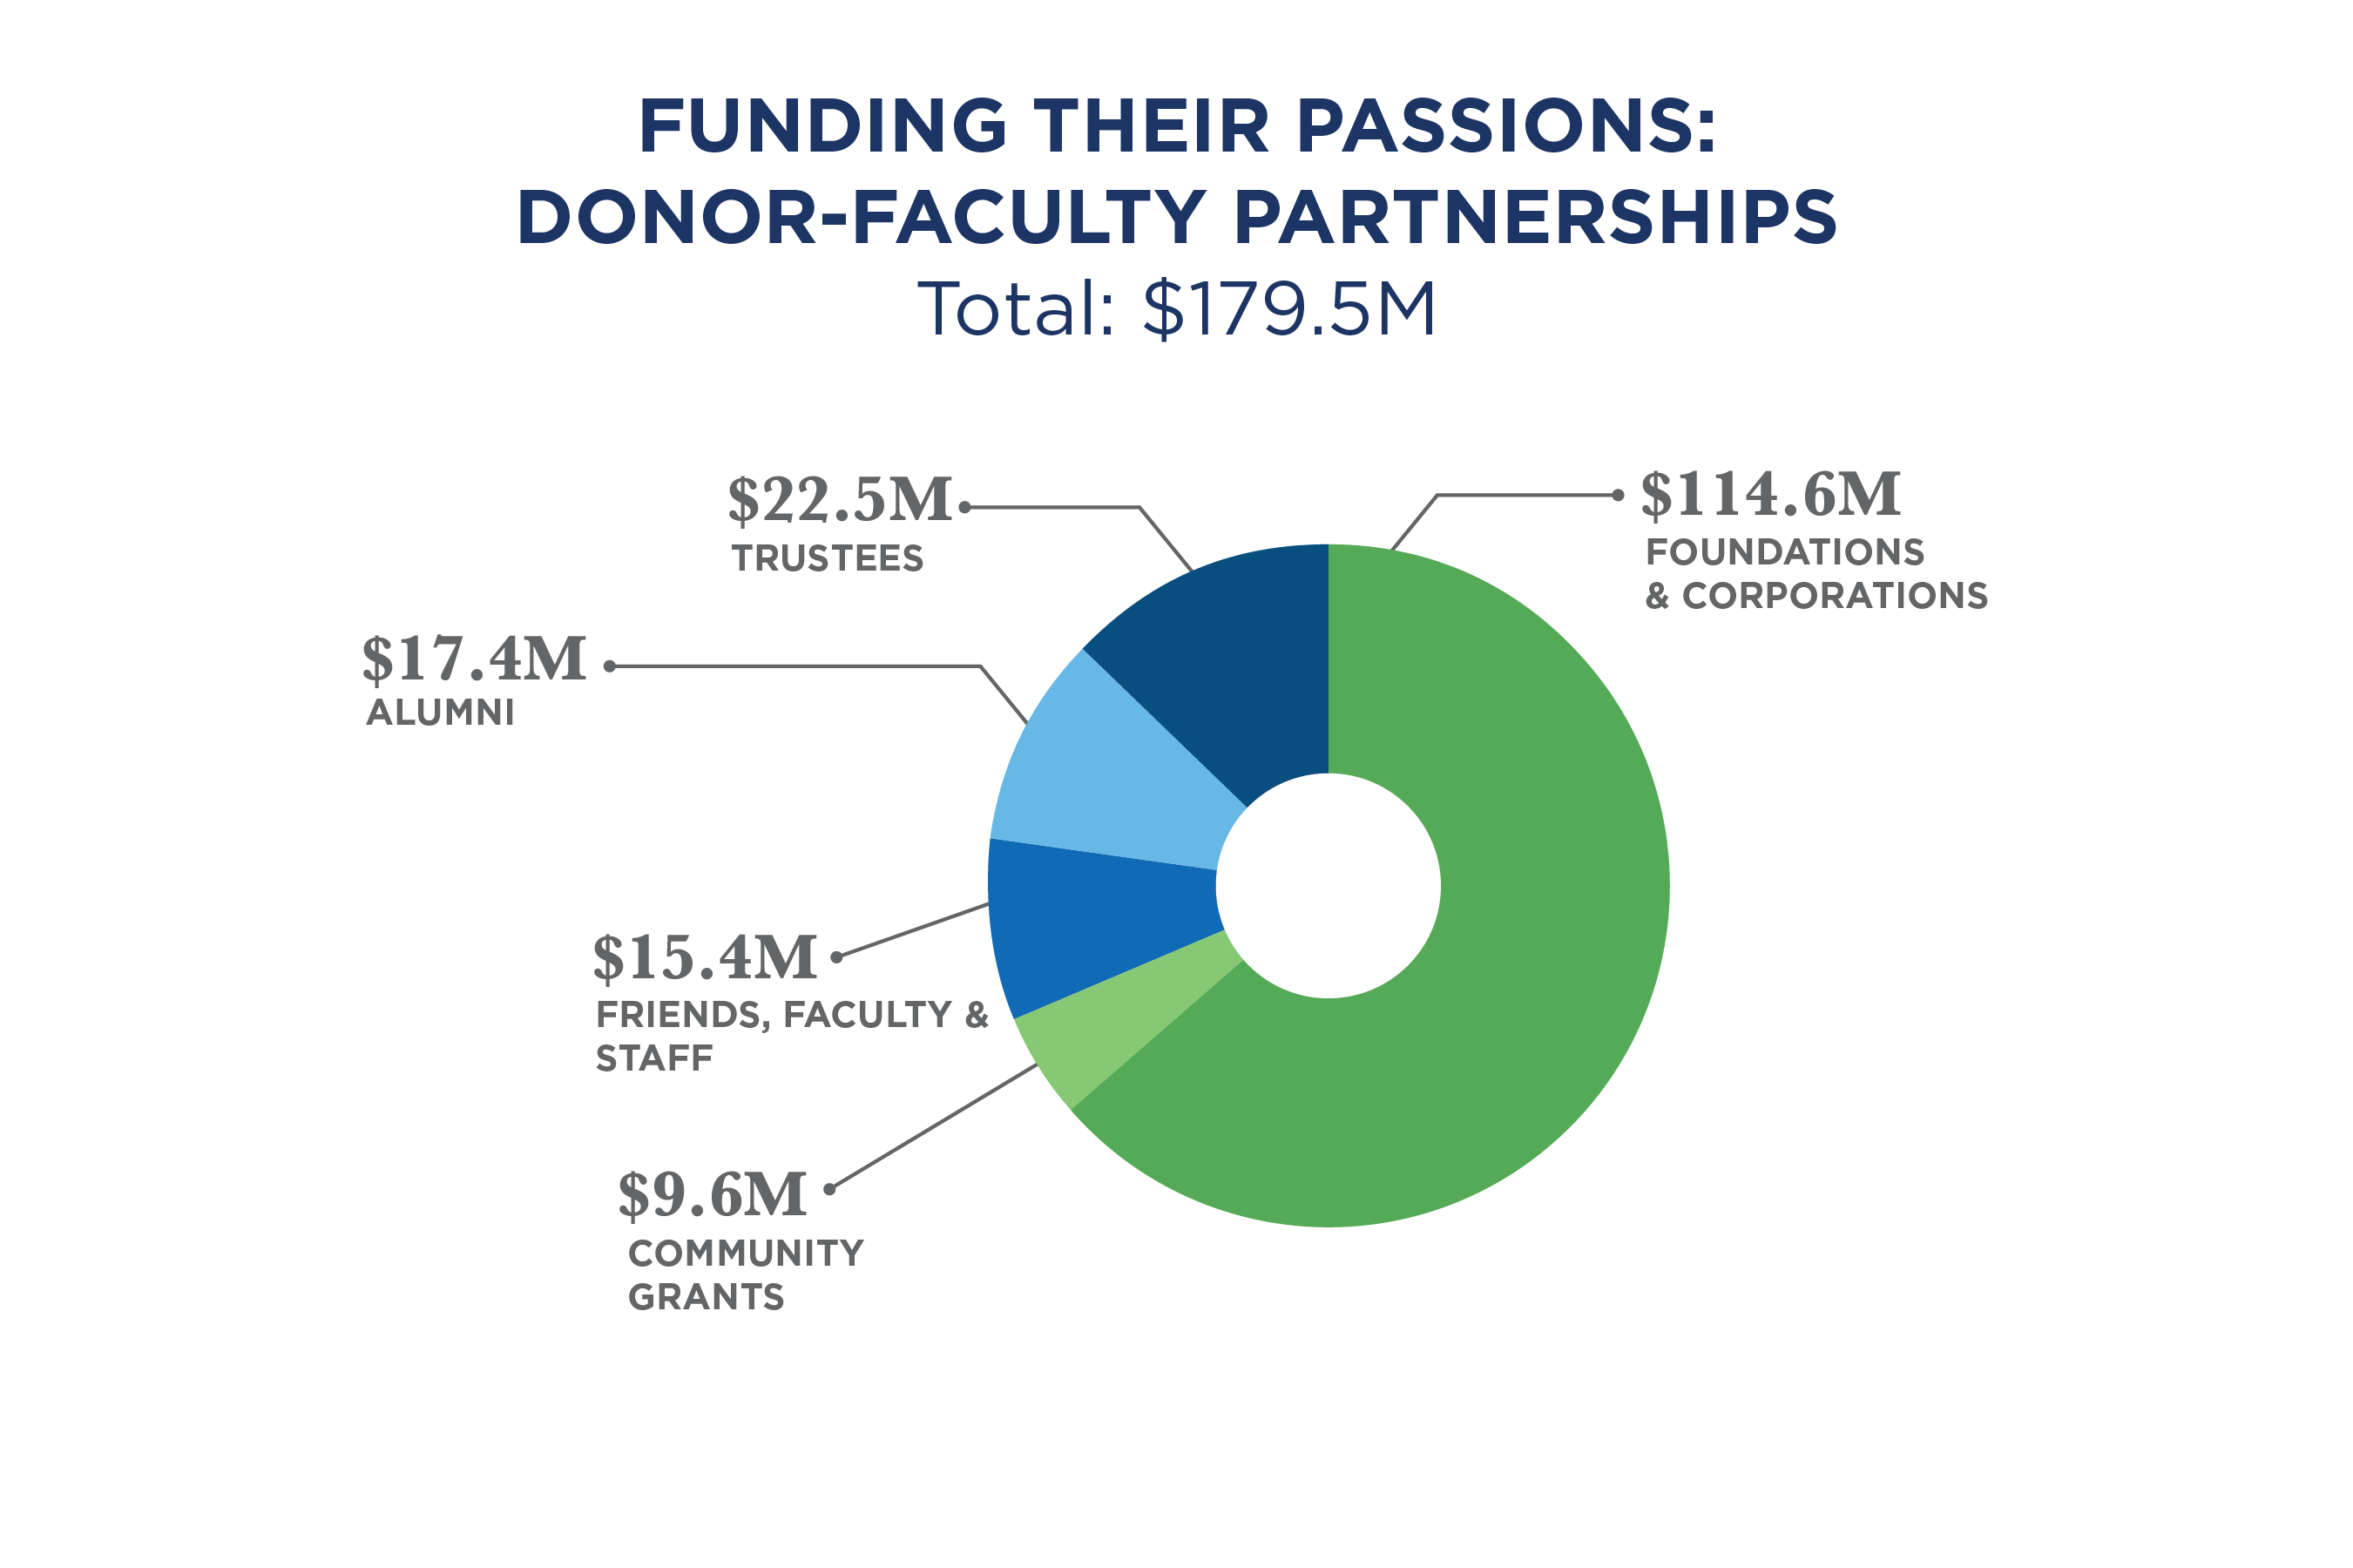 Chart showing Giving to Support Faculty & Programs by constituency, 64% ($114.6M) from Foundations & Corporations, 13% ($22.5M) from Trustees, 10% ($17.4M) from Alumni, 8% ($14.9M) from Friends, 5% ($9.6M) from Government Grants, and .3% ($.5M) from Faculty & Staff